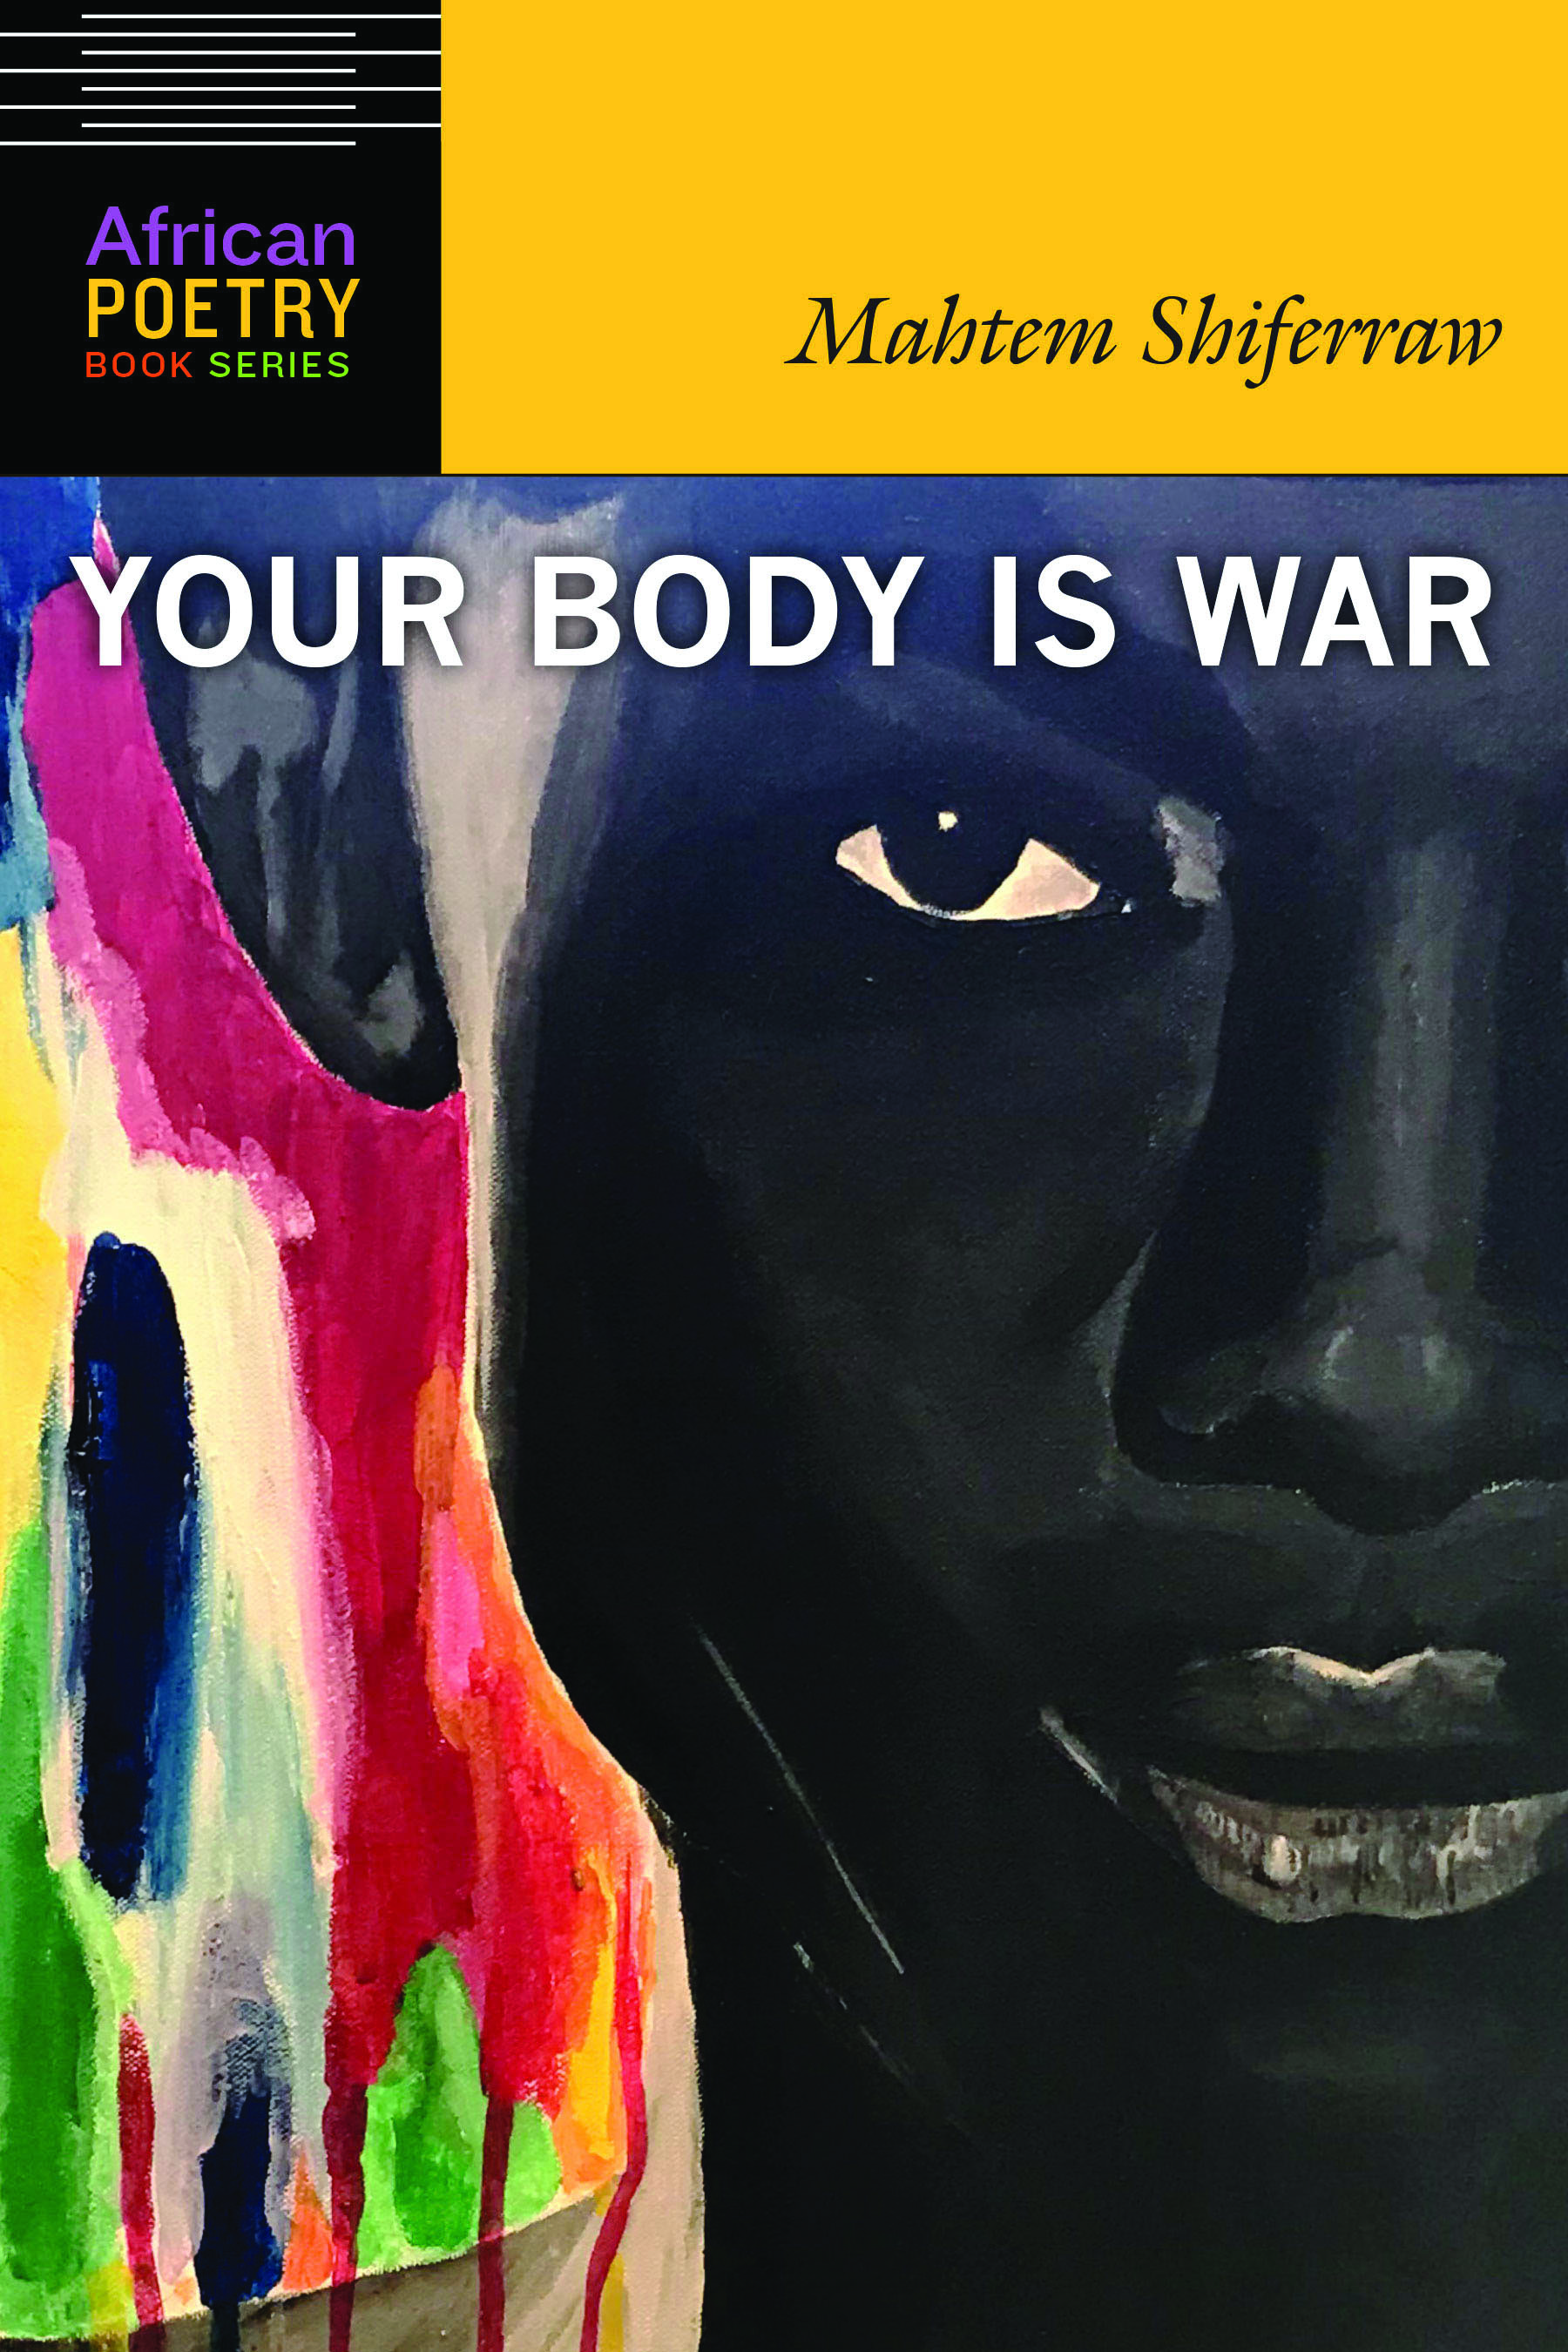 Cover - Your Body is War.jpg